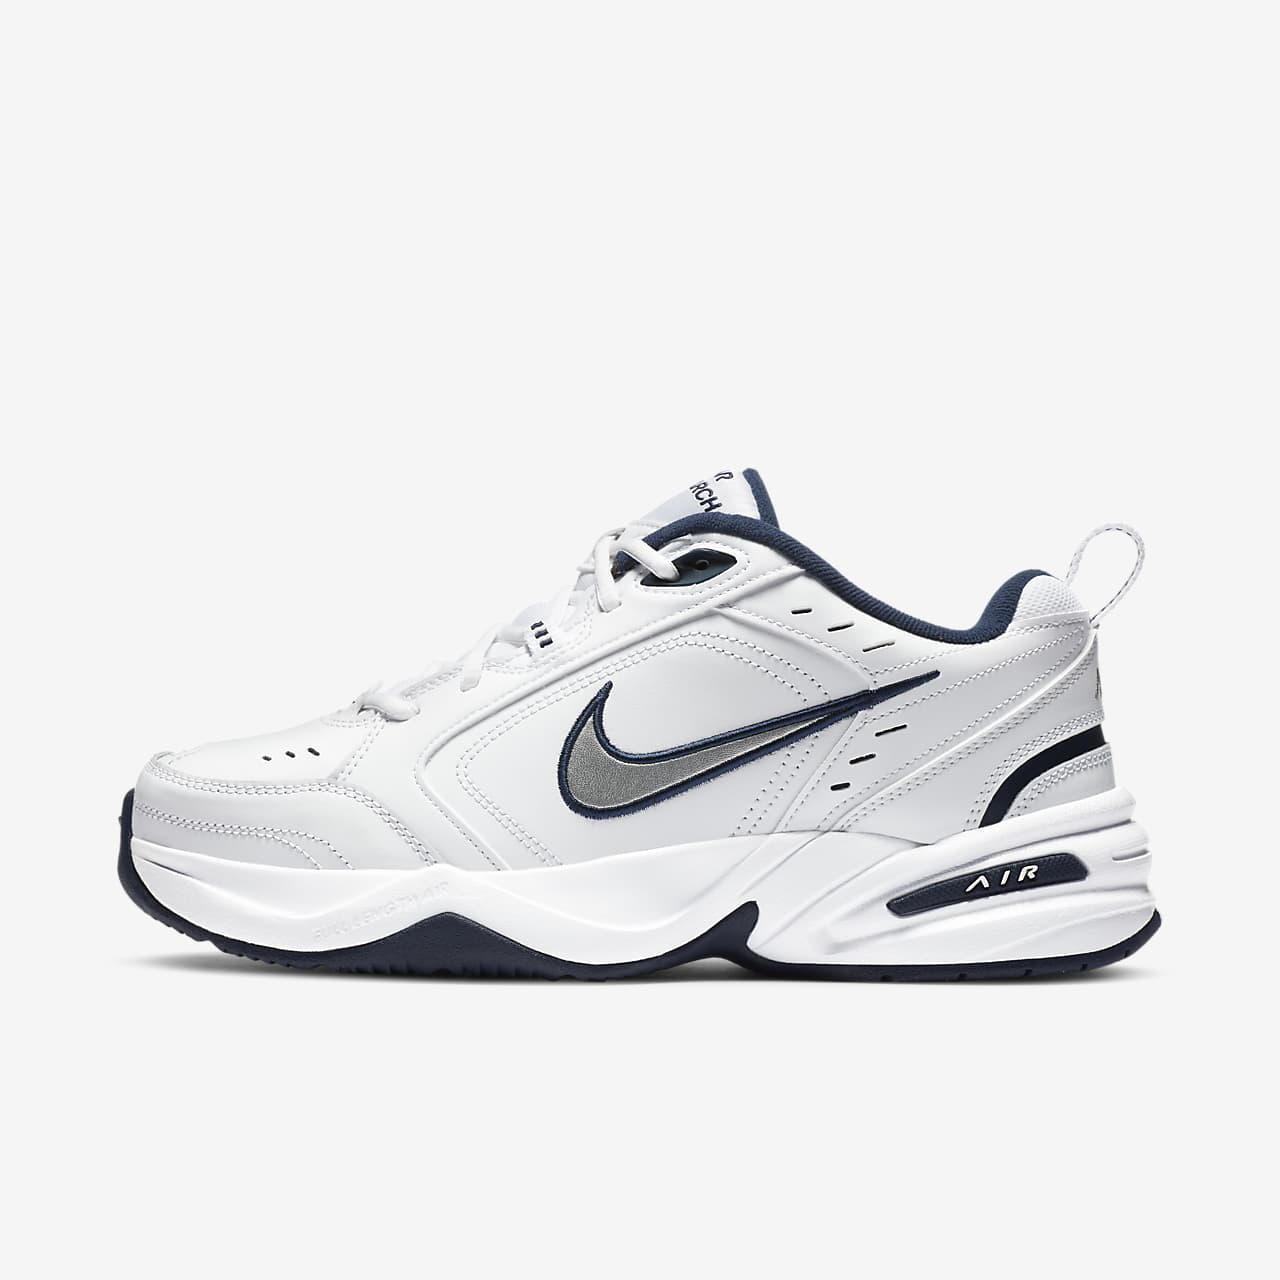 1c4487d24 Scarpa da palestra/lifestyle Nike Air Monarch IV. Nike.com IT